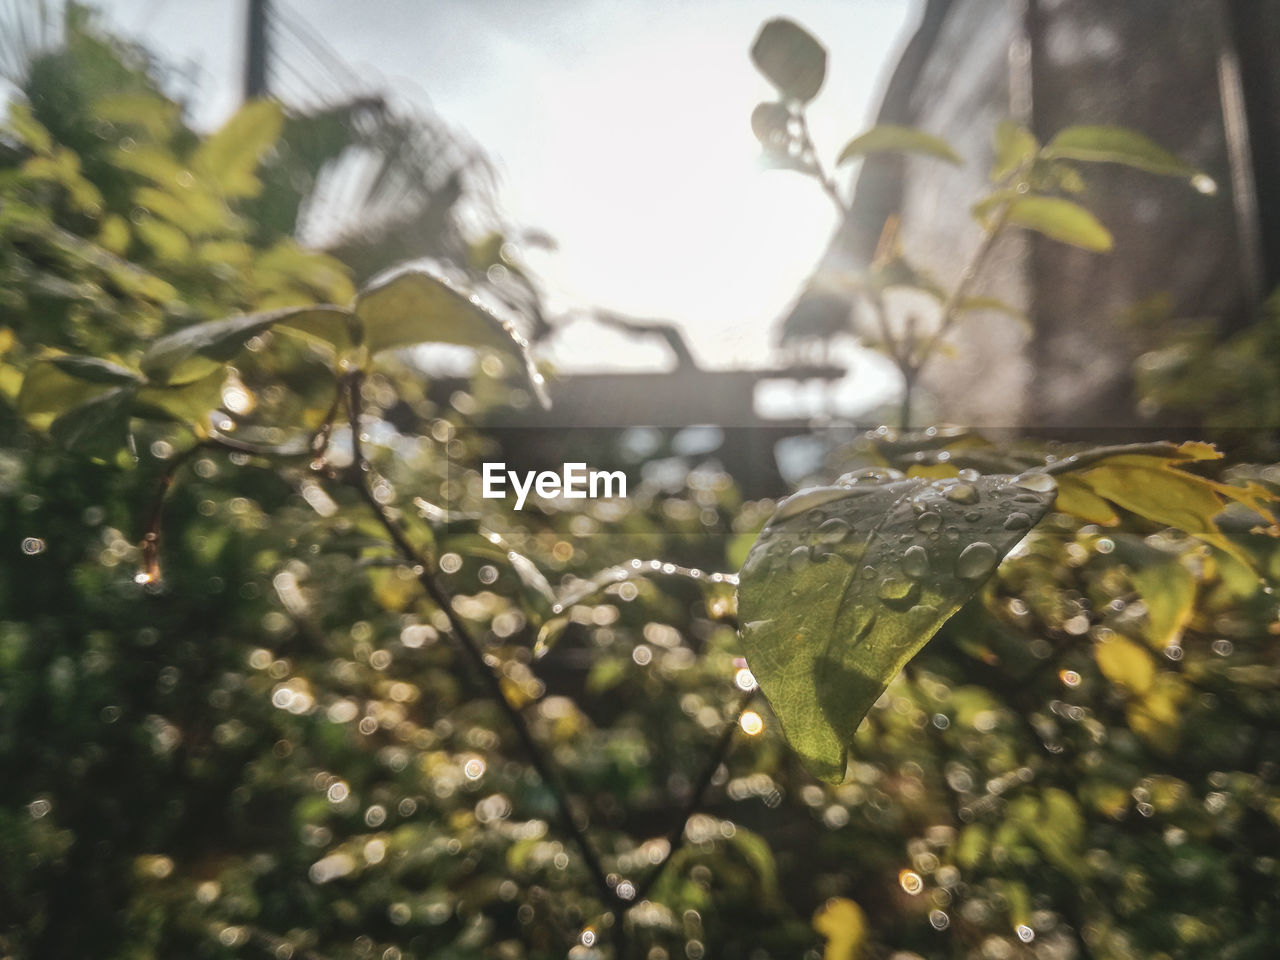 plant, leaf, growth, plant part, drop, nature, water, wet, beauty in nature, close-up, selective focus, no people, day, green color, focus on foreground, sunlight, outdoors, tree, freshness, rain, dew, leaves, raindrop, rainy season, purity